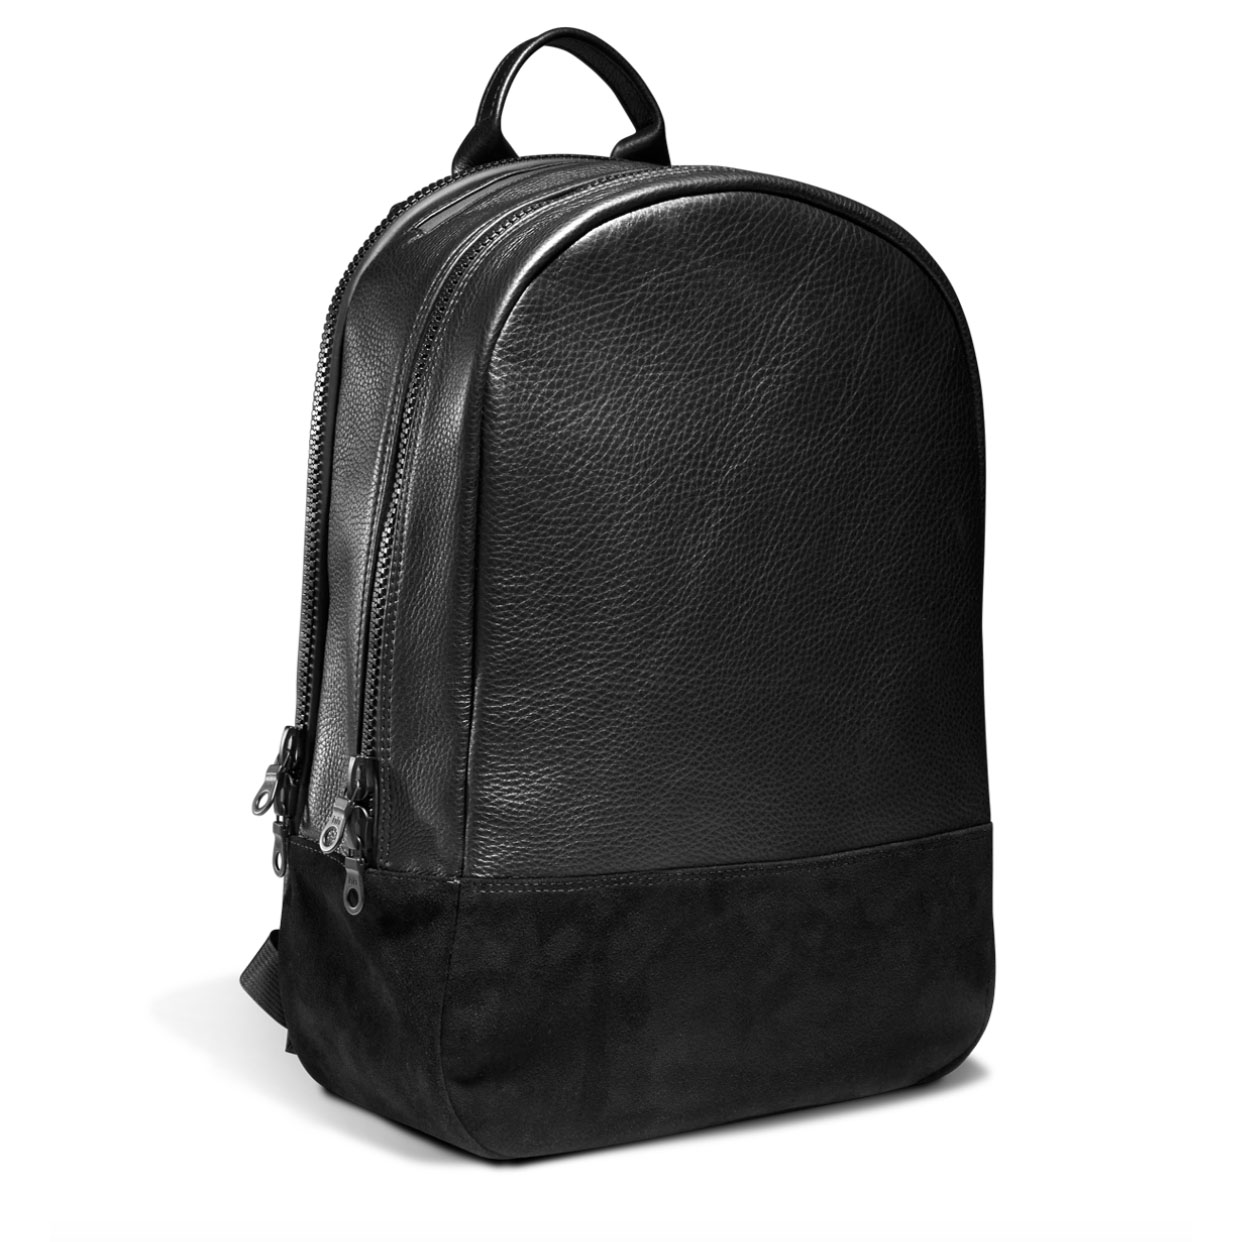 Killspencer Utility Daypack Backpack